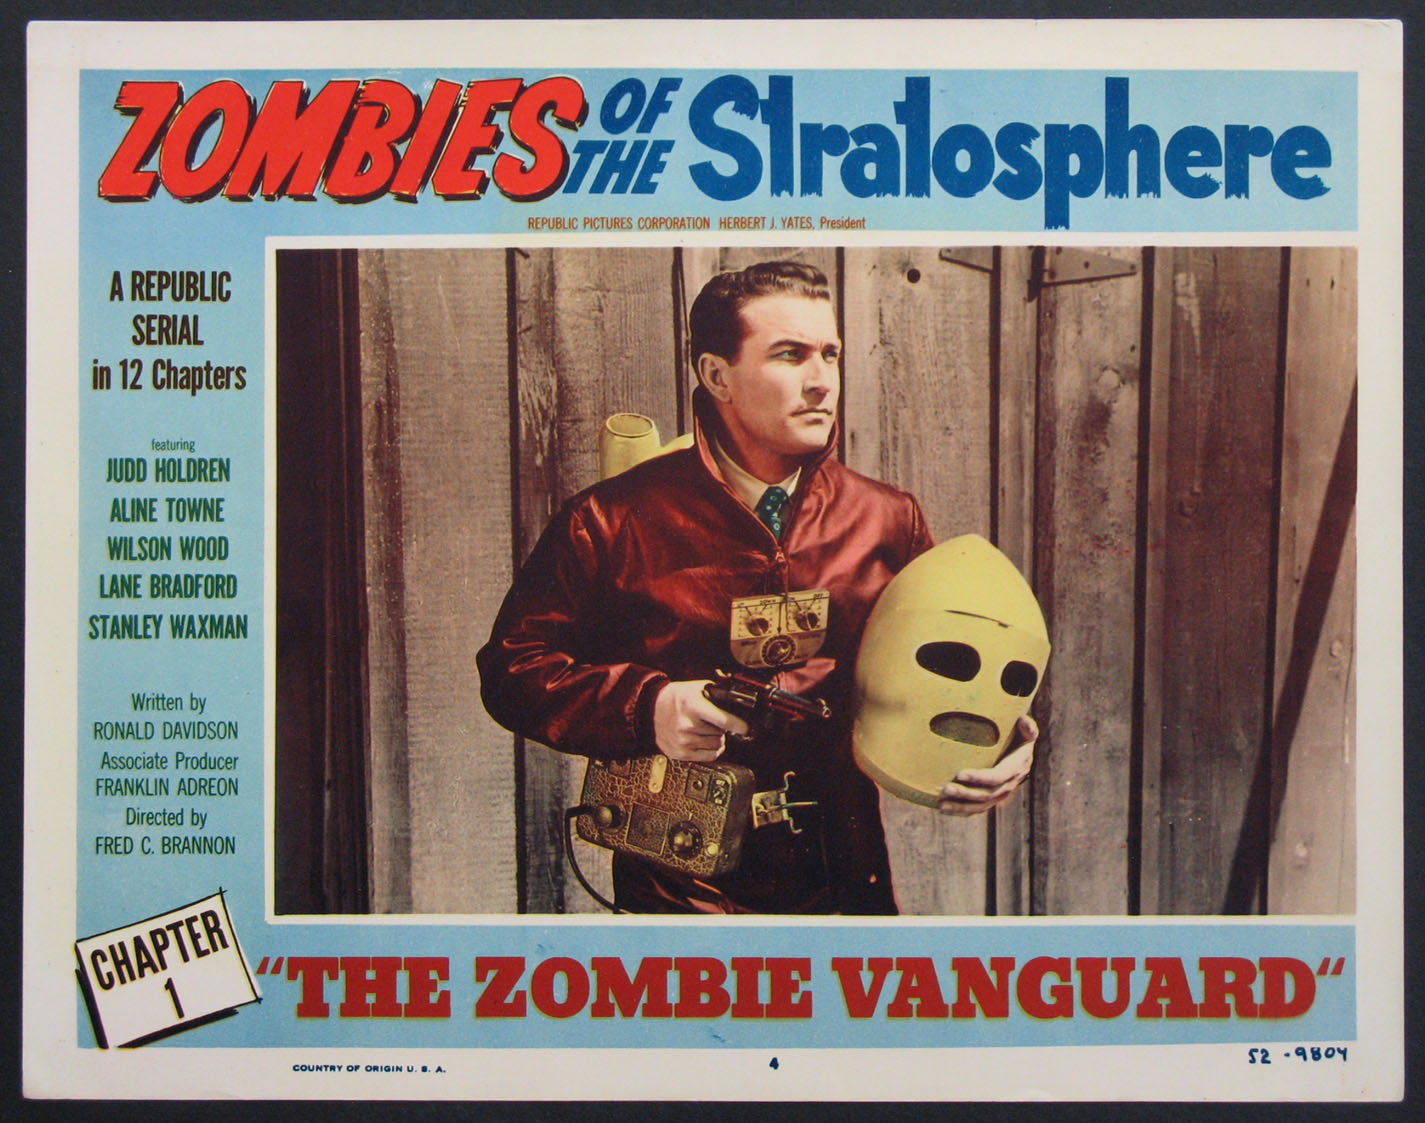 ZOMBIES OF THE STRATOSPHERE @ FilmPosters.com